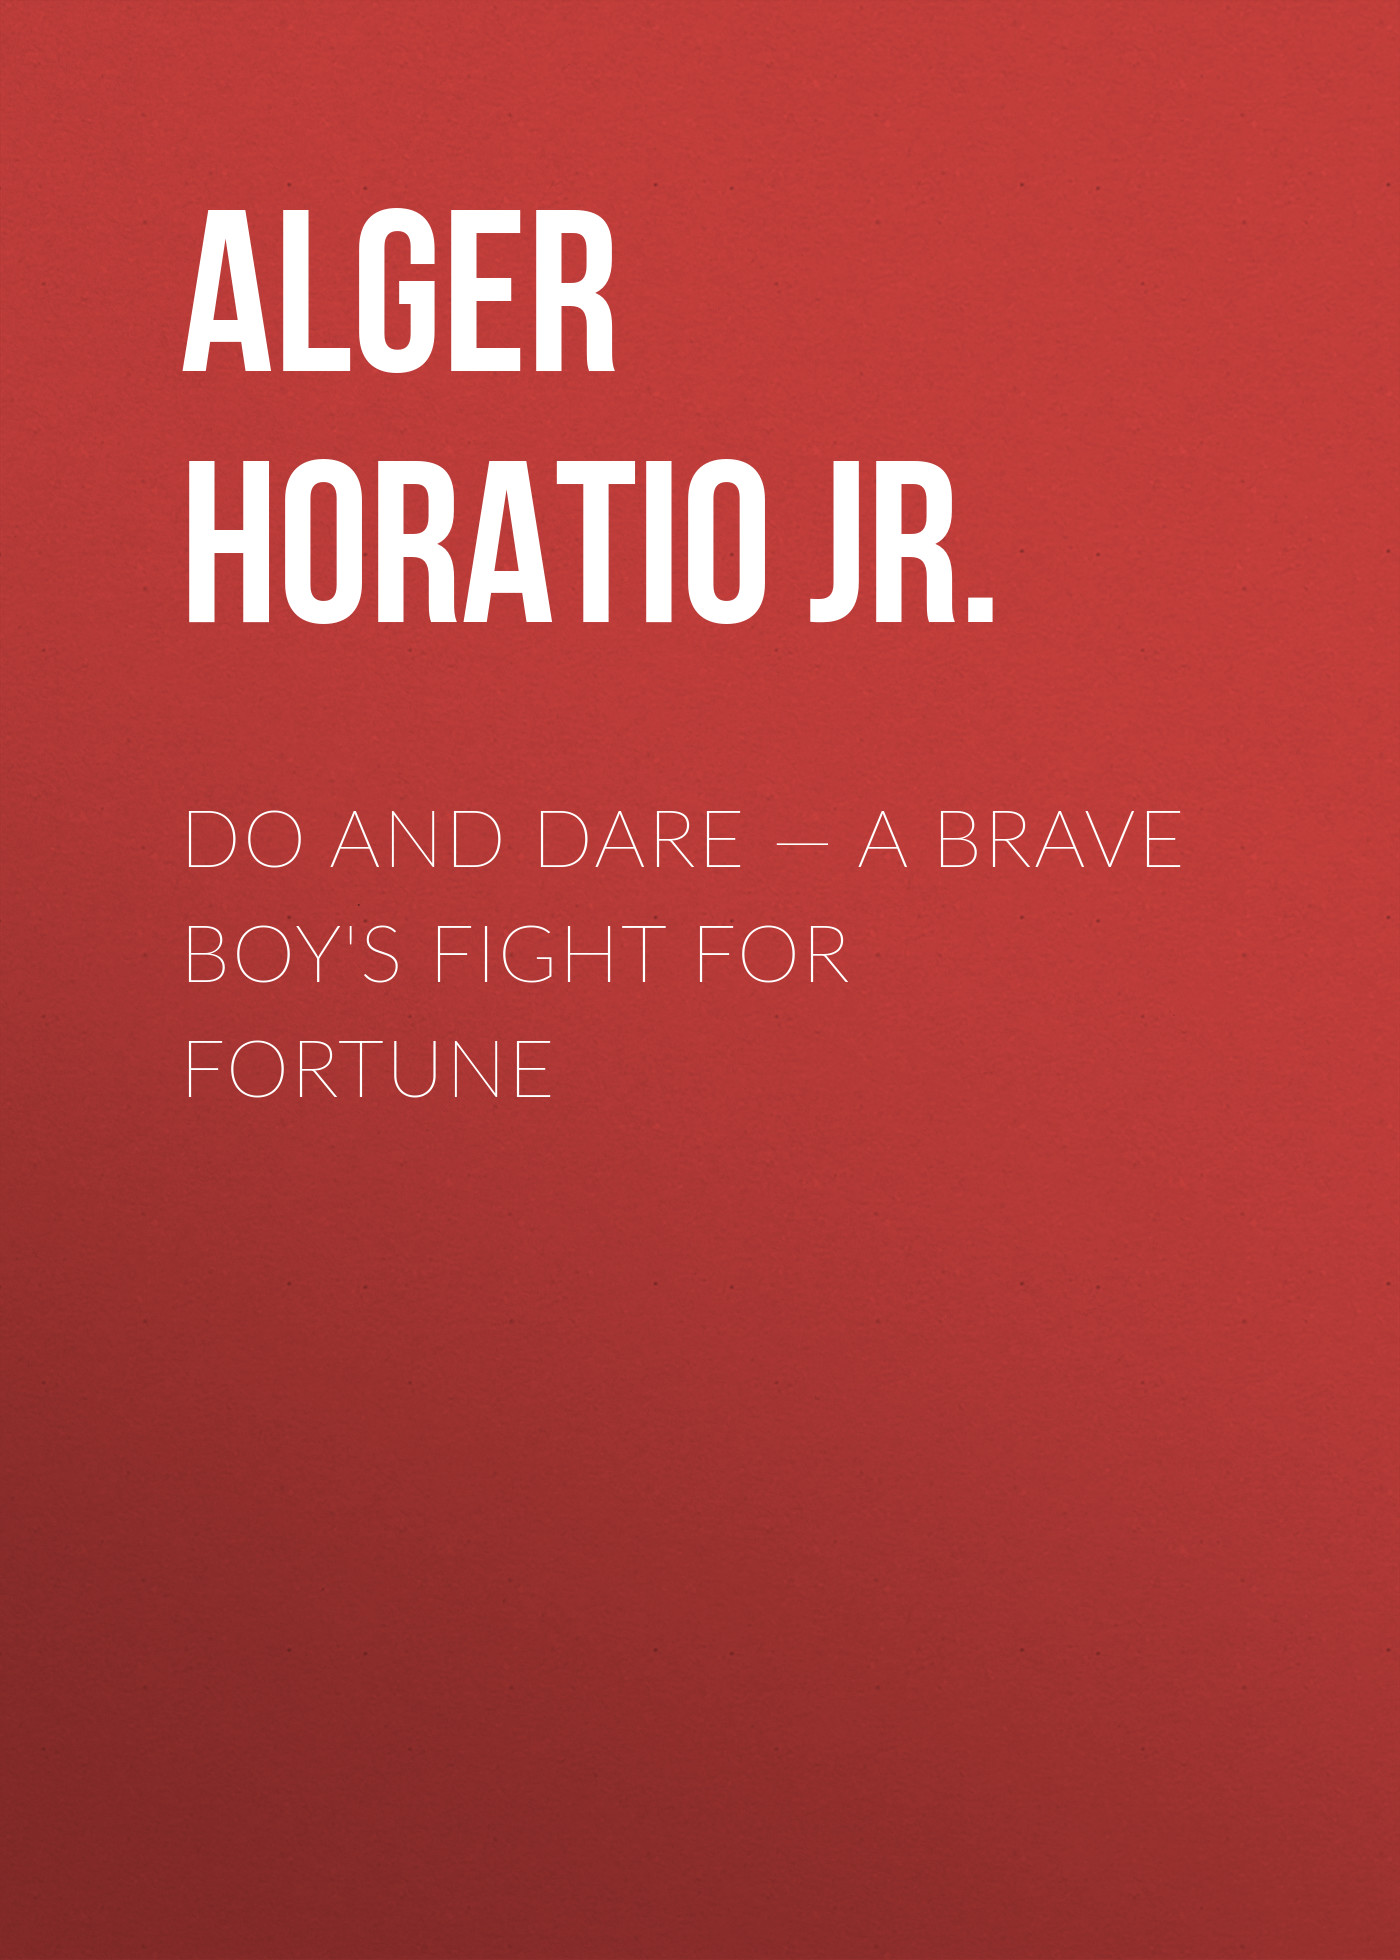 Alger Horatio Jr. Do and Dare — a Brave Boy's Fight for Fortune high quality jr for futaba metal support holder for transmitter radio system for rc camera drone accessories